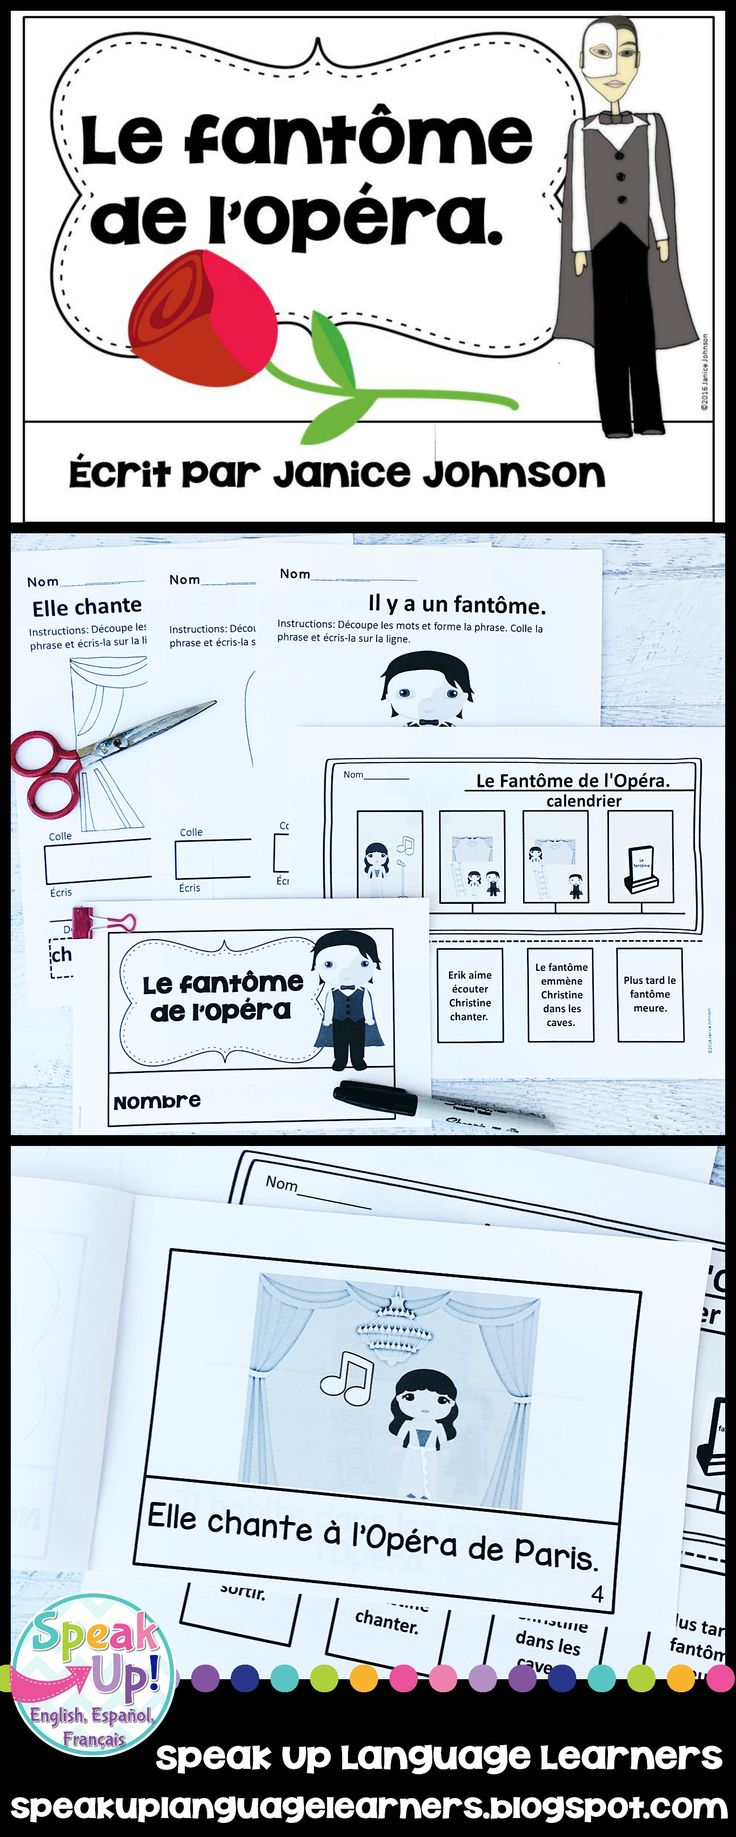 Workbooks realidades 1 capitulo 5b workbook answers : 61 best Los adjetivos for Spanish class images on Pinterest ...